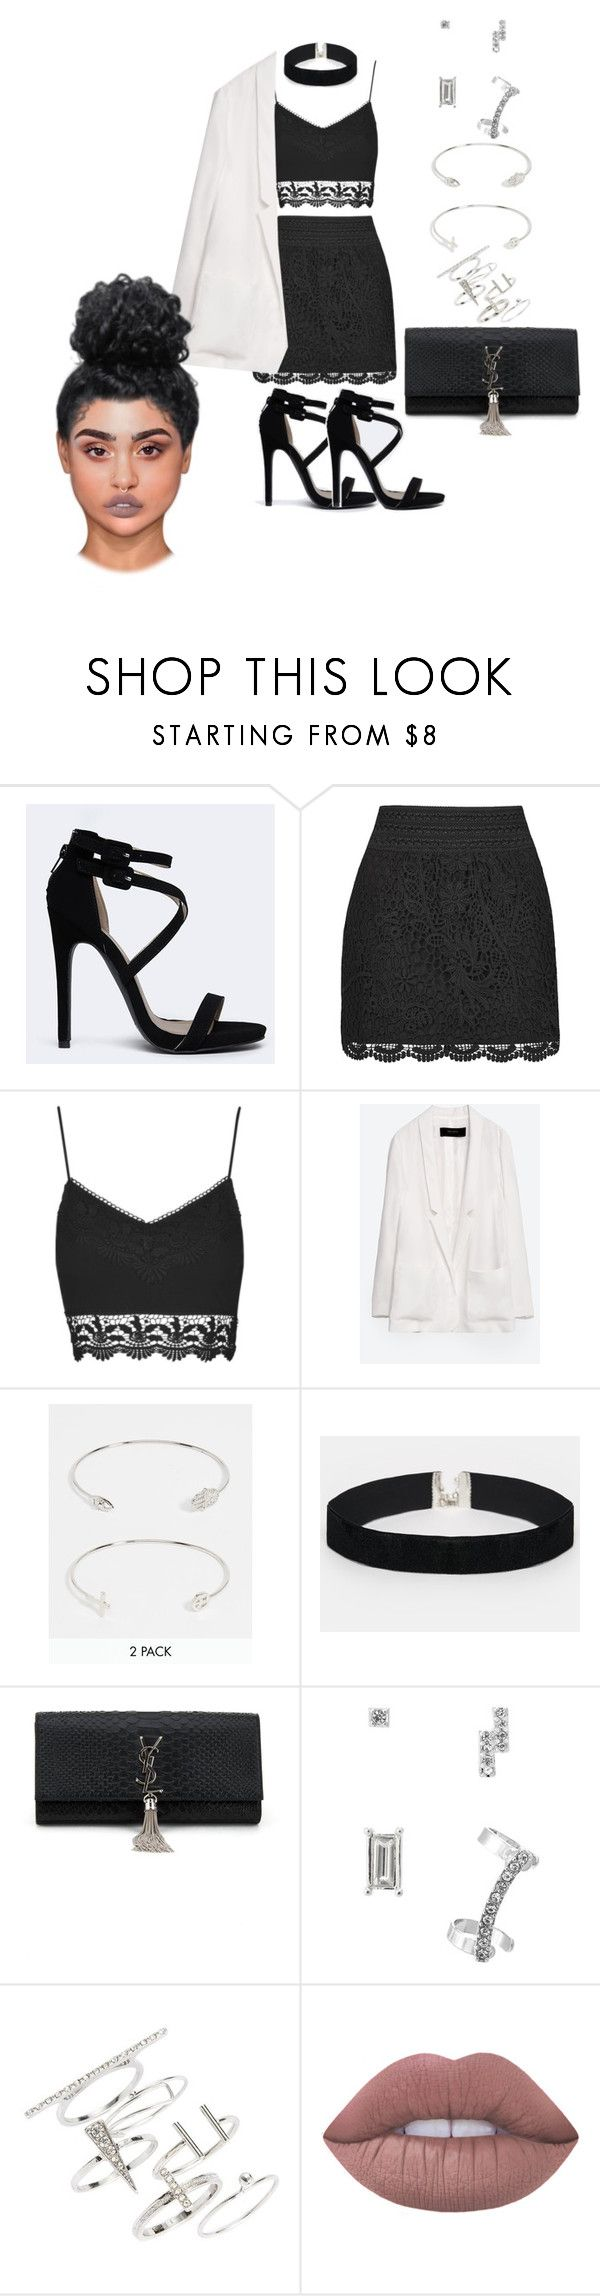 """""""Untitled #2068"""" by mrkr-lawson ❤ liked on Polyvore featuring Qupid, Topshop, Zara, ASOS, Yves Saint Laurent, Lipsy and Lime Crime"""